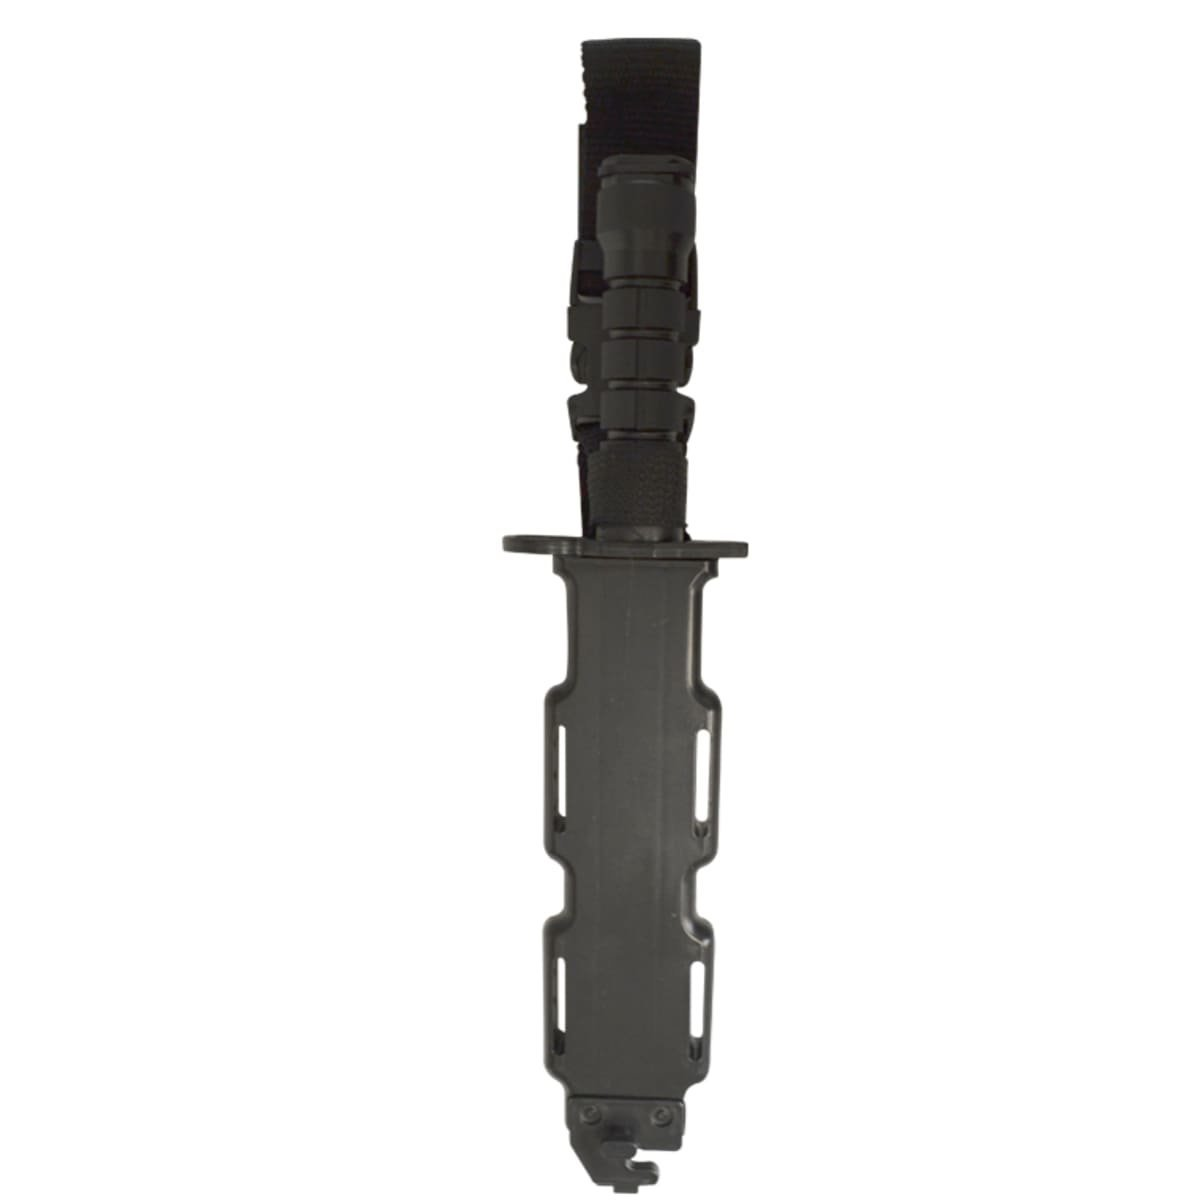 View larger image of Valken Rubber Training Bayonet